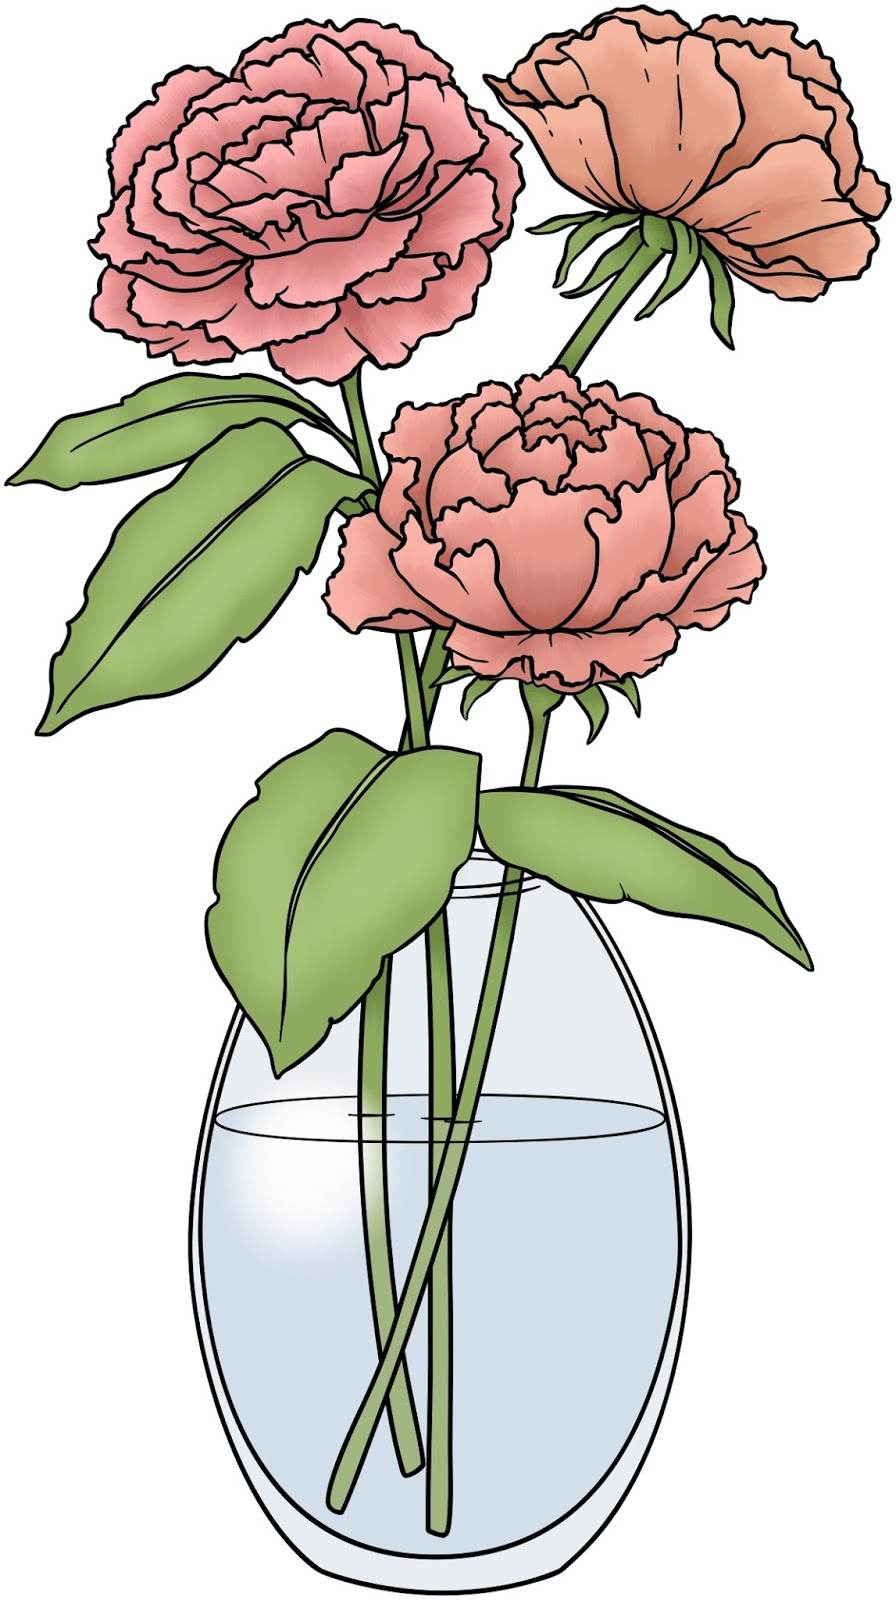 Drawn peony simple Rights in 2016 peony Remastered: